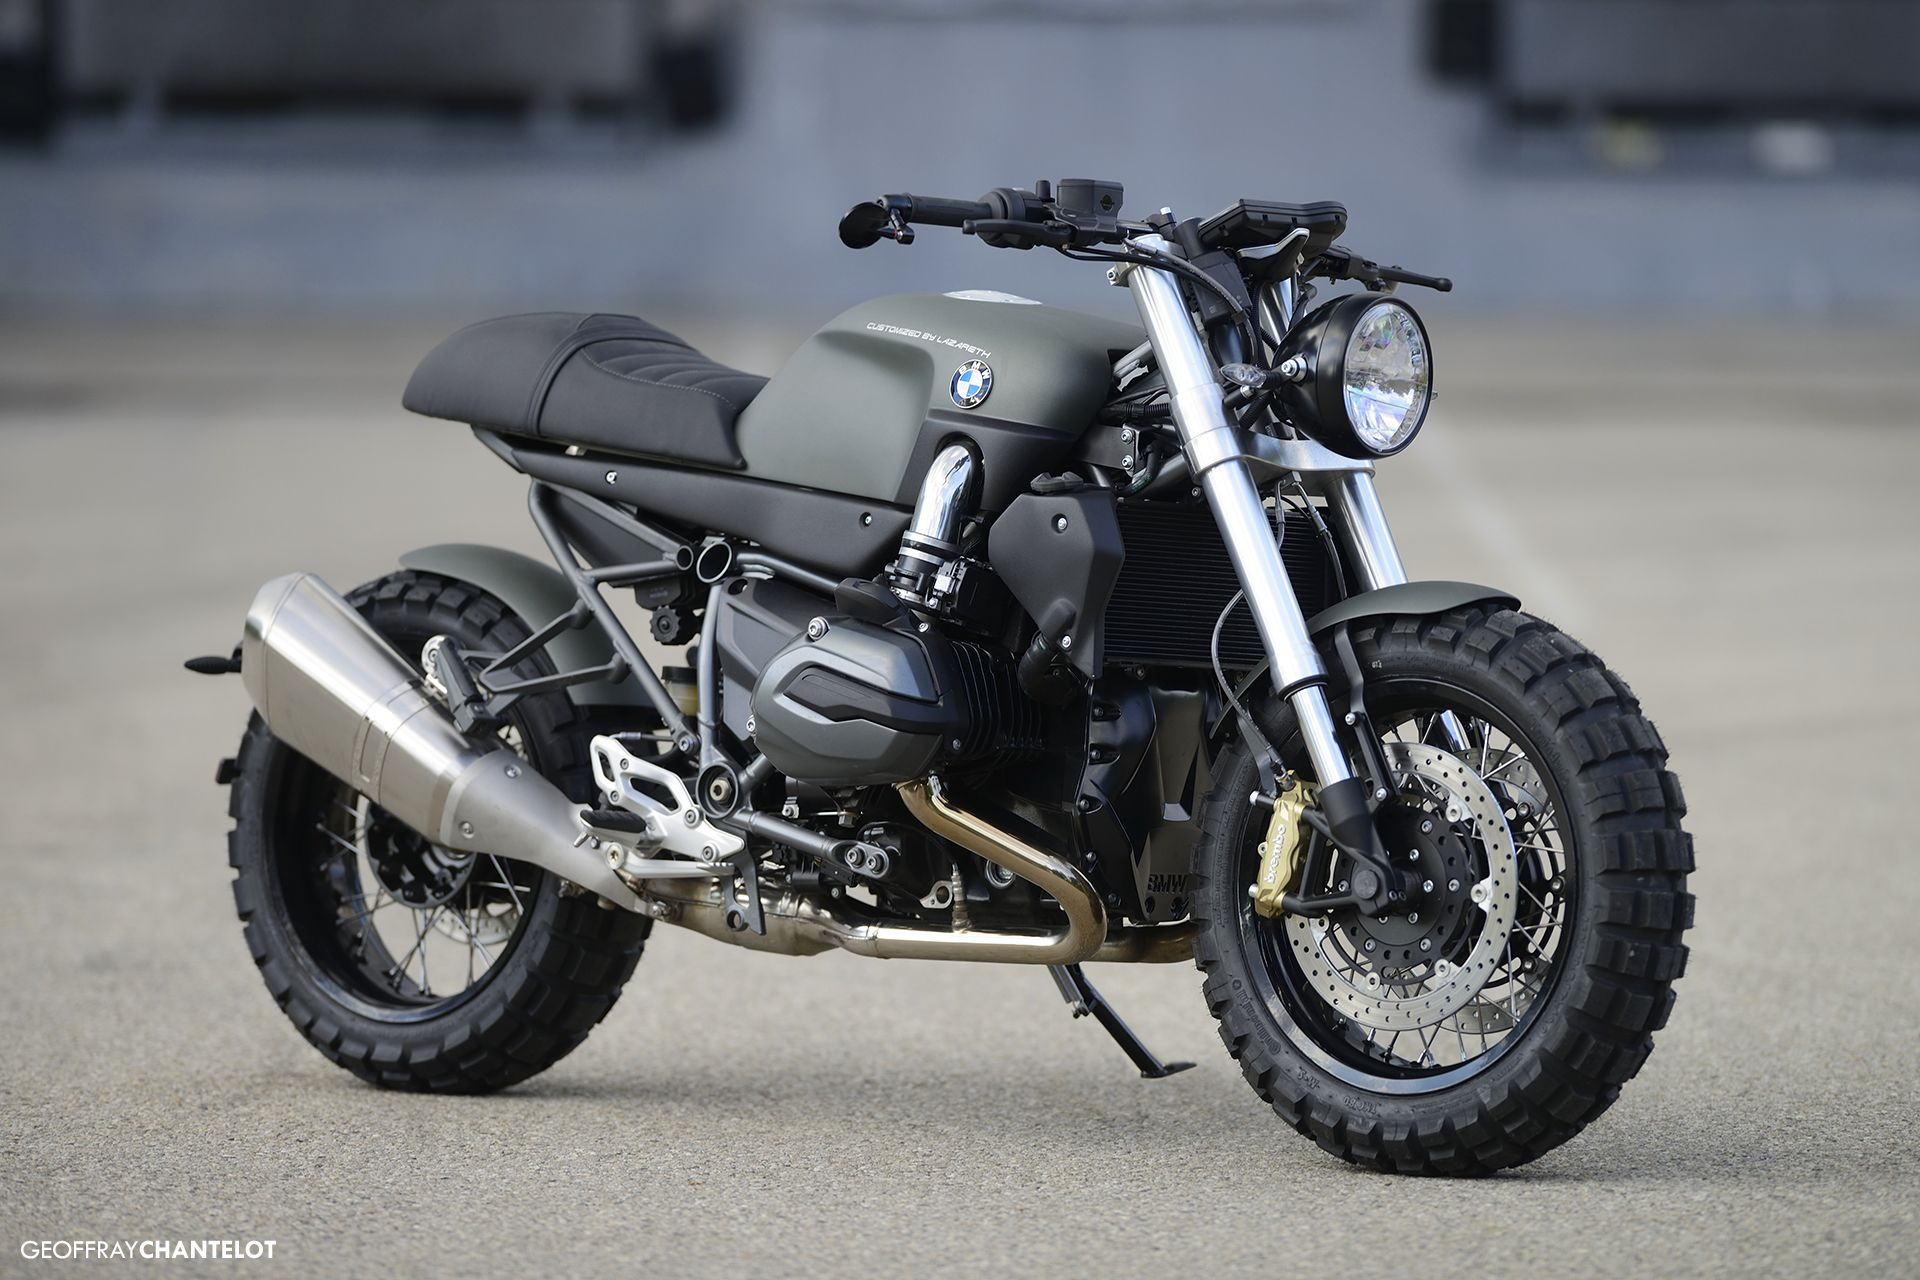 The bmw r60 5 classic german motorcycles motorcycle classics cars motorcycles pinterest bmw motorcycle design and bmw motorcycles